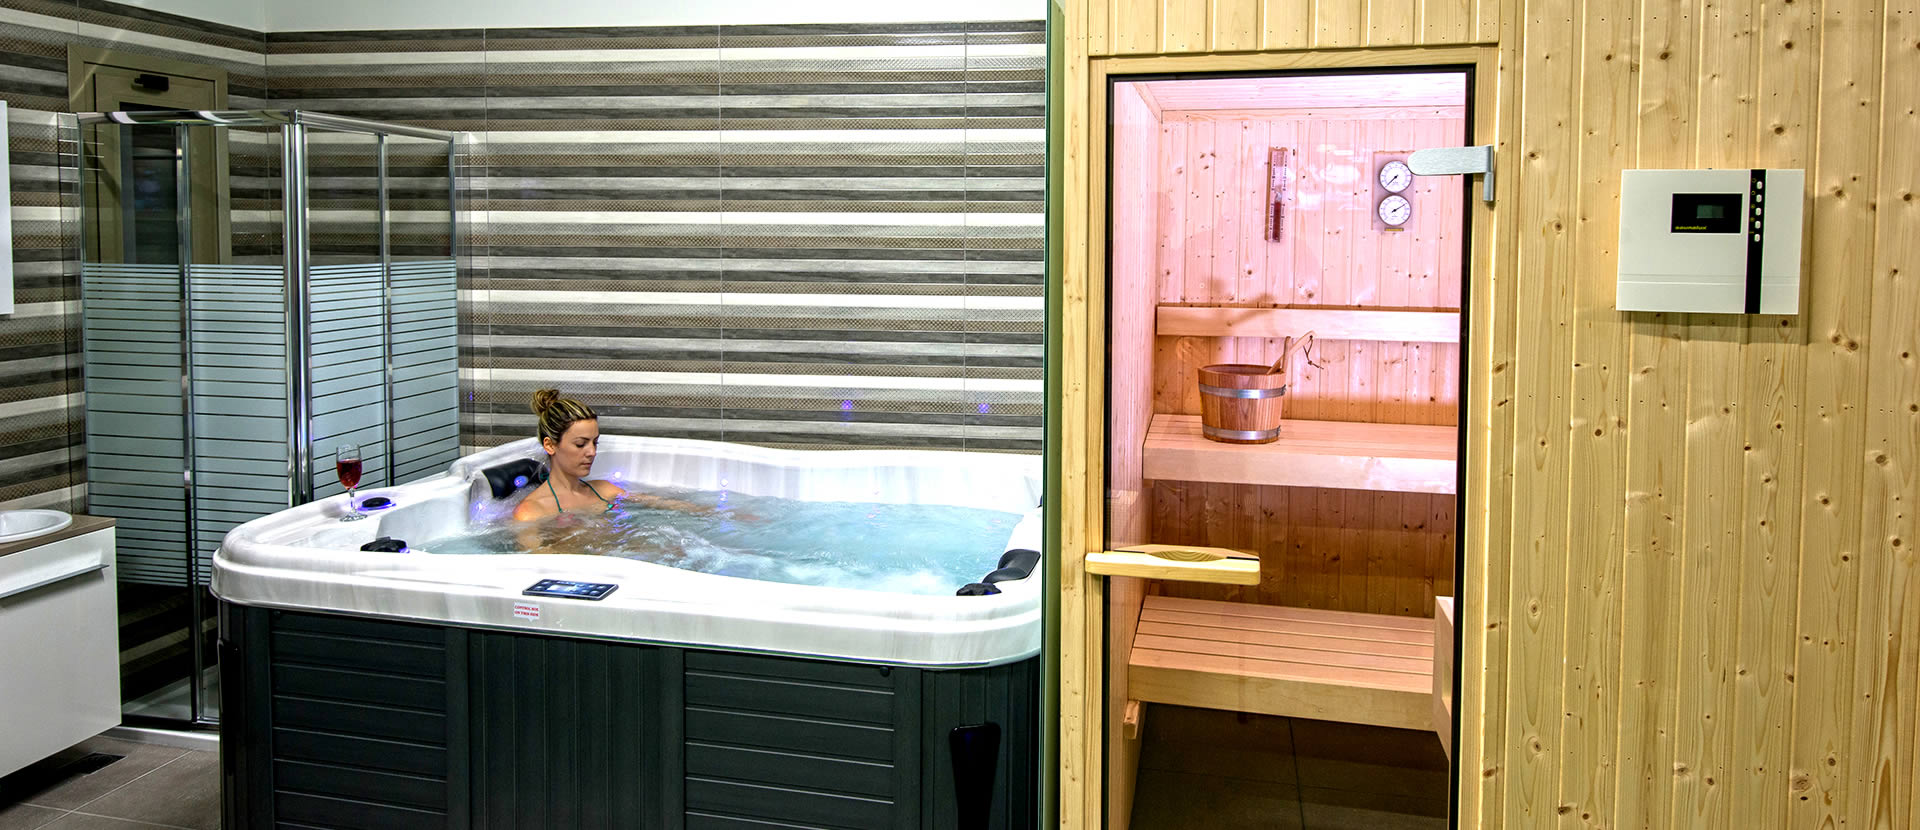 Professional Wellness facilities with Gym, Jacuzzi, Sauna, Tartan Track & Turf.